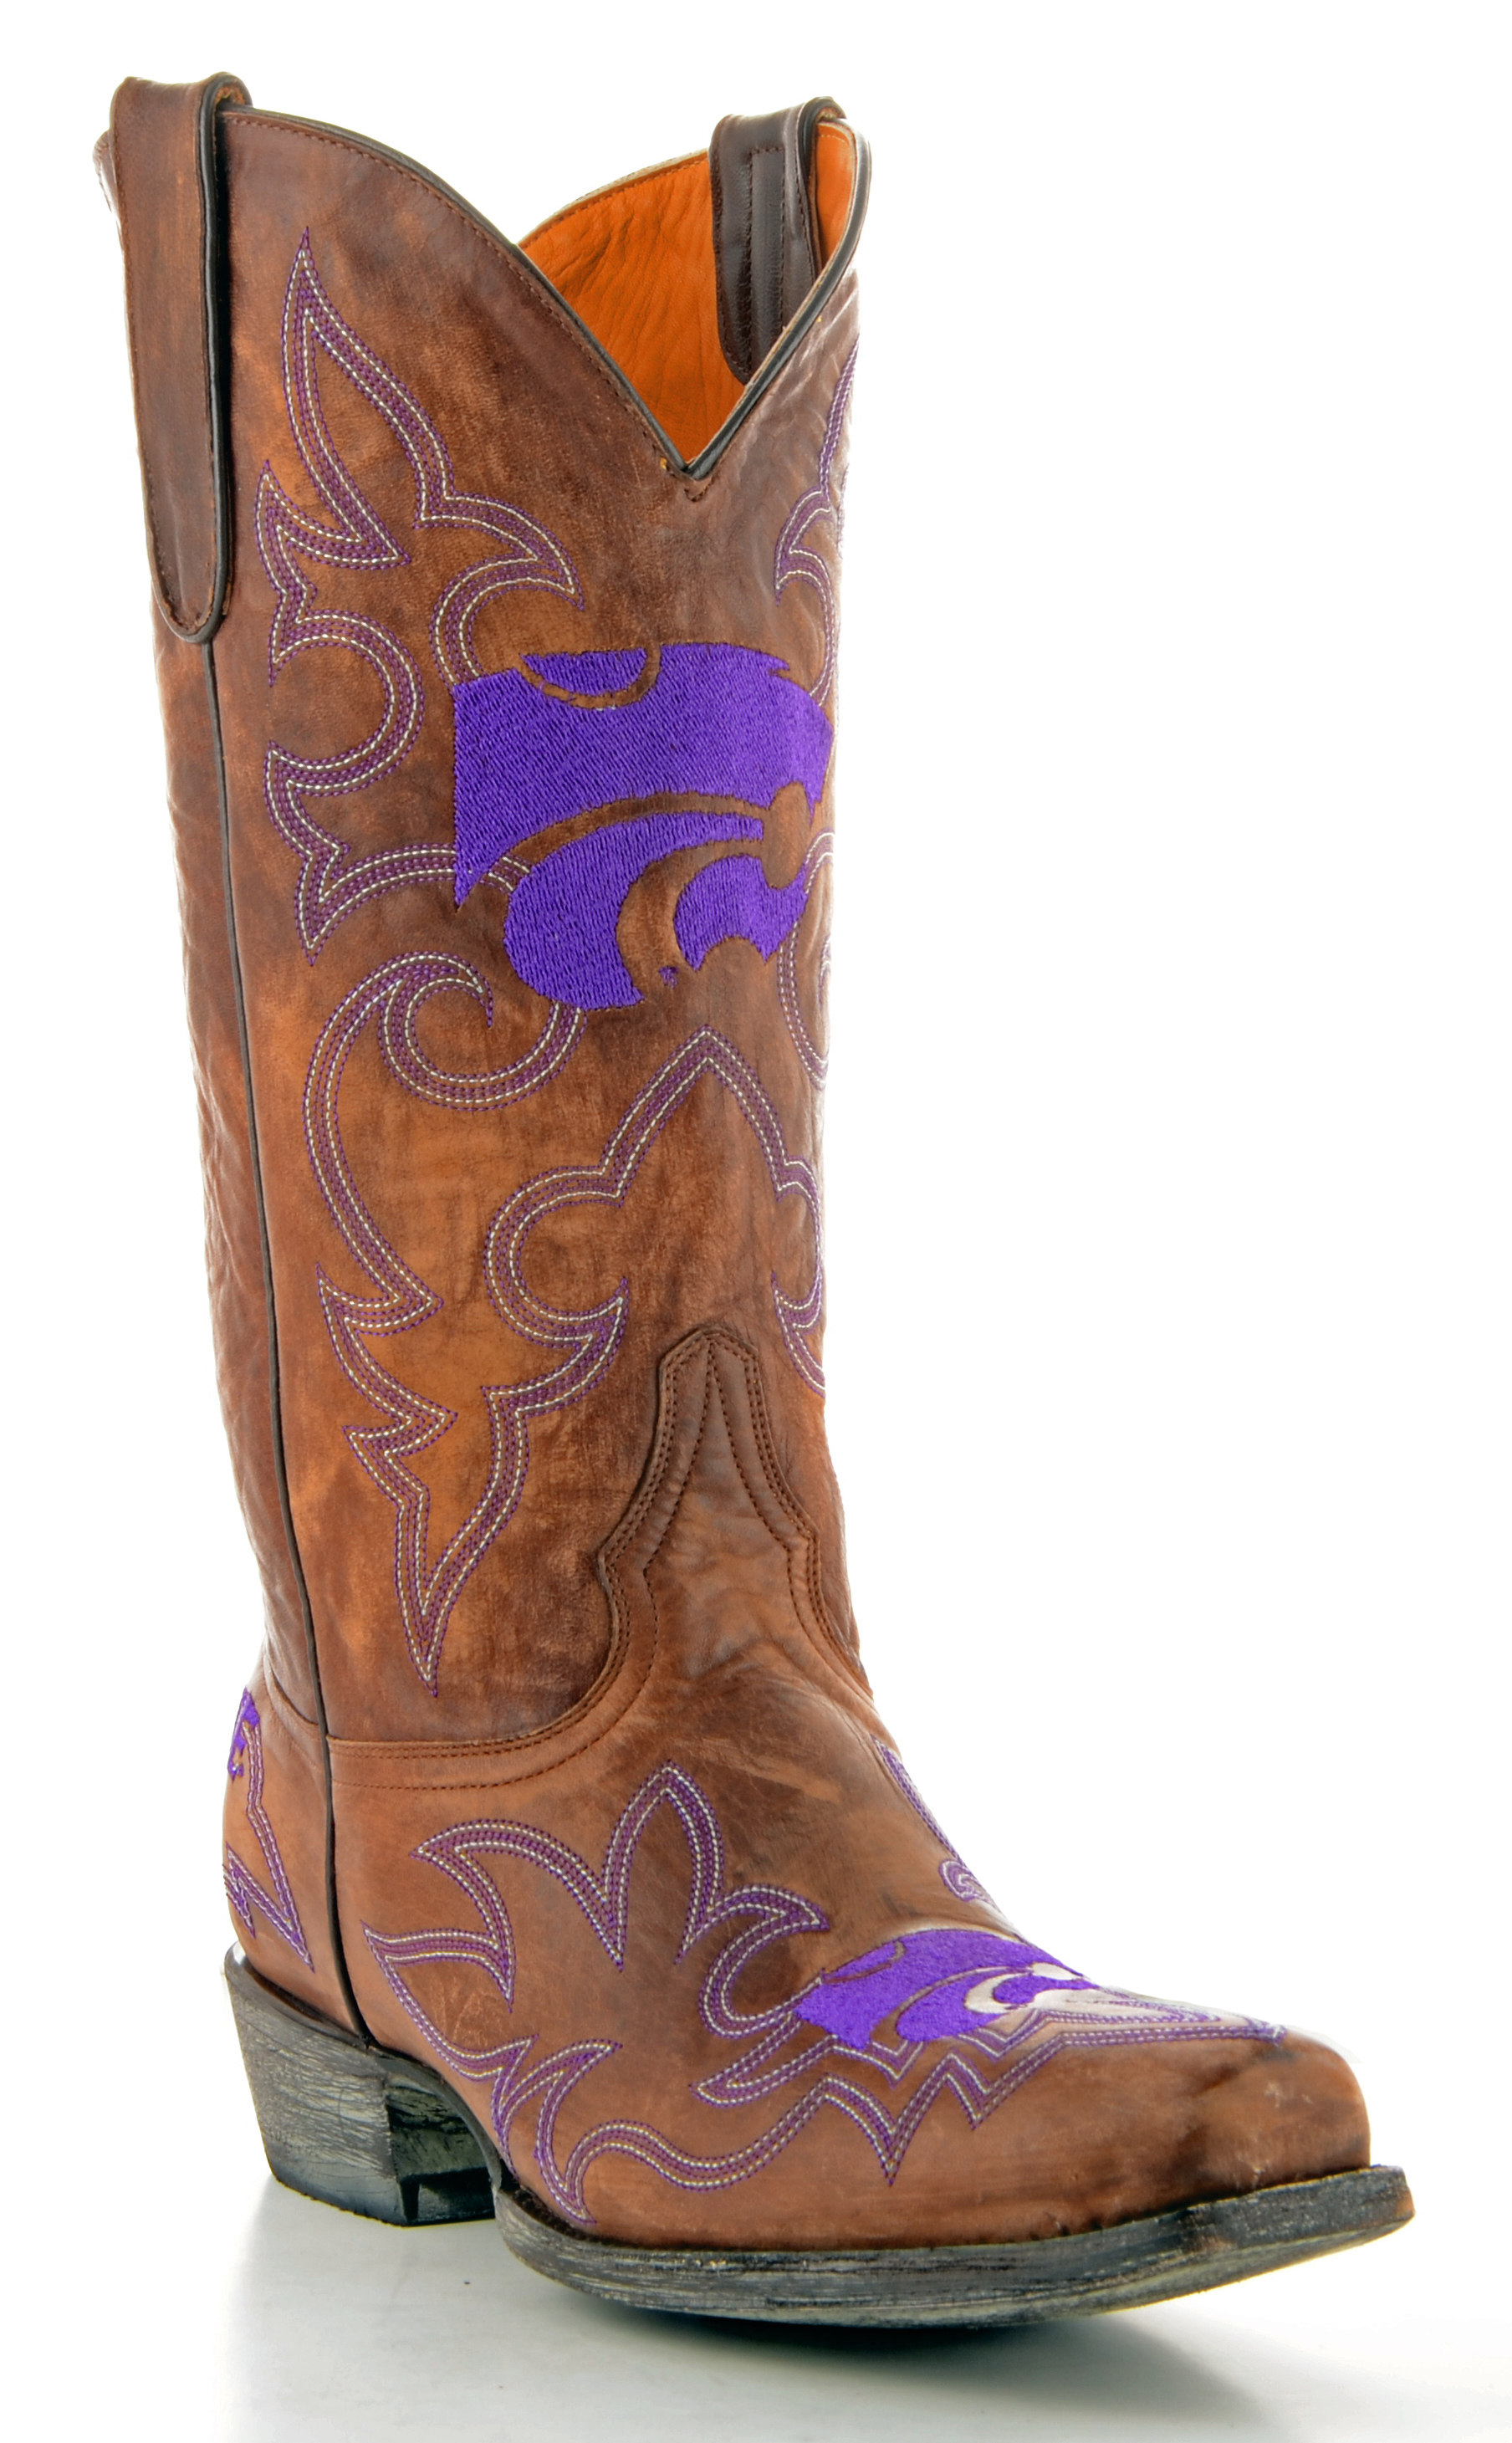 Gameday Boots Mens Brass Leather Kansas State Cowboy Boots (Size 8) Kst-M042-1 by GameDay Boots